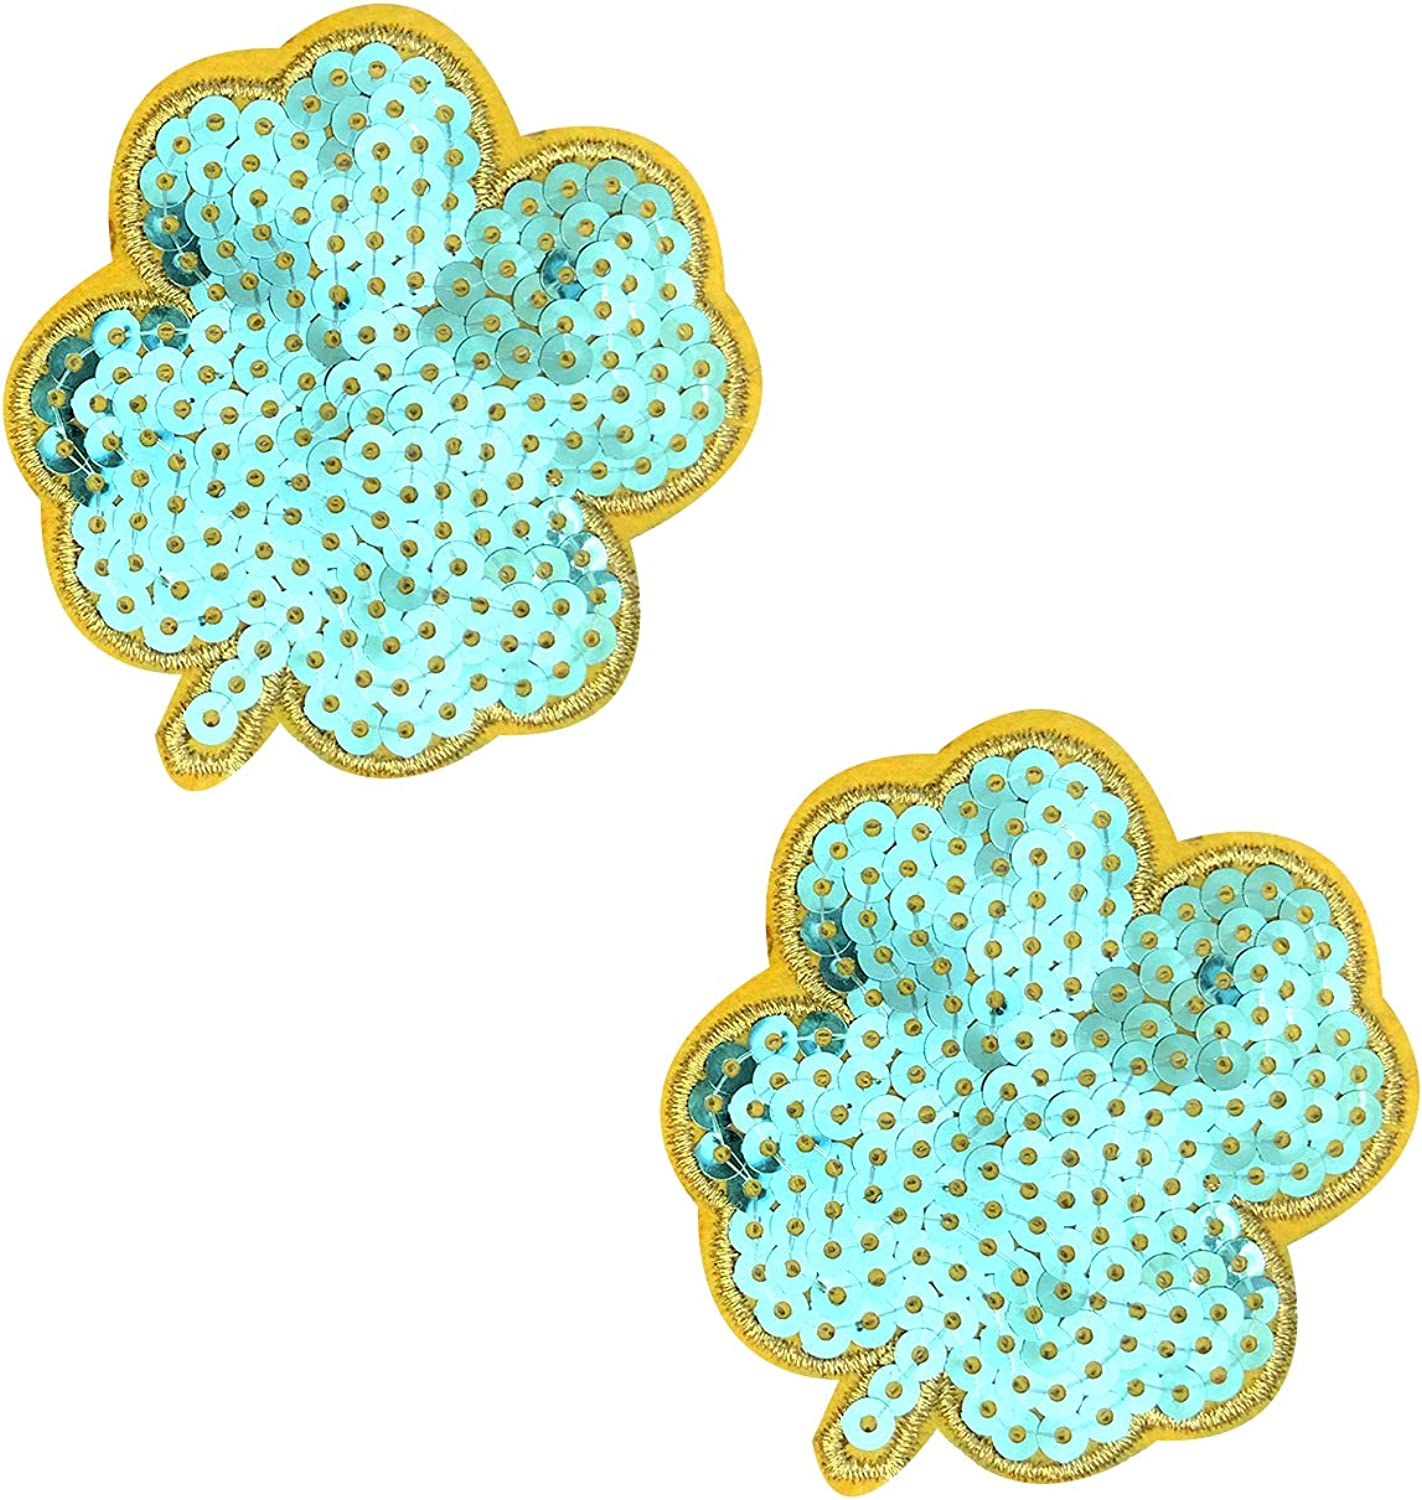 Neva Nude Sequin Nifty Nipztix Pasties Nipple Covers, Medical Grade Adhesive, Waterproof, Made in USA, With Refills 2 Wears